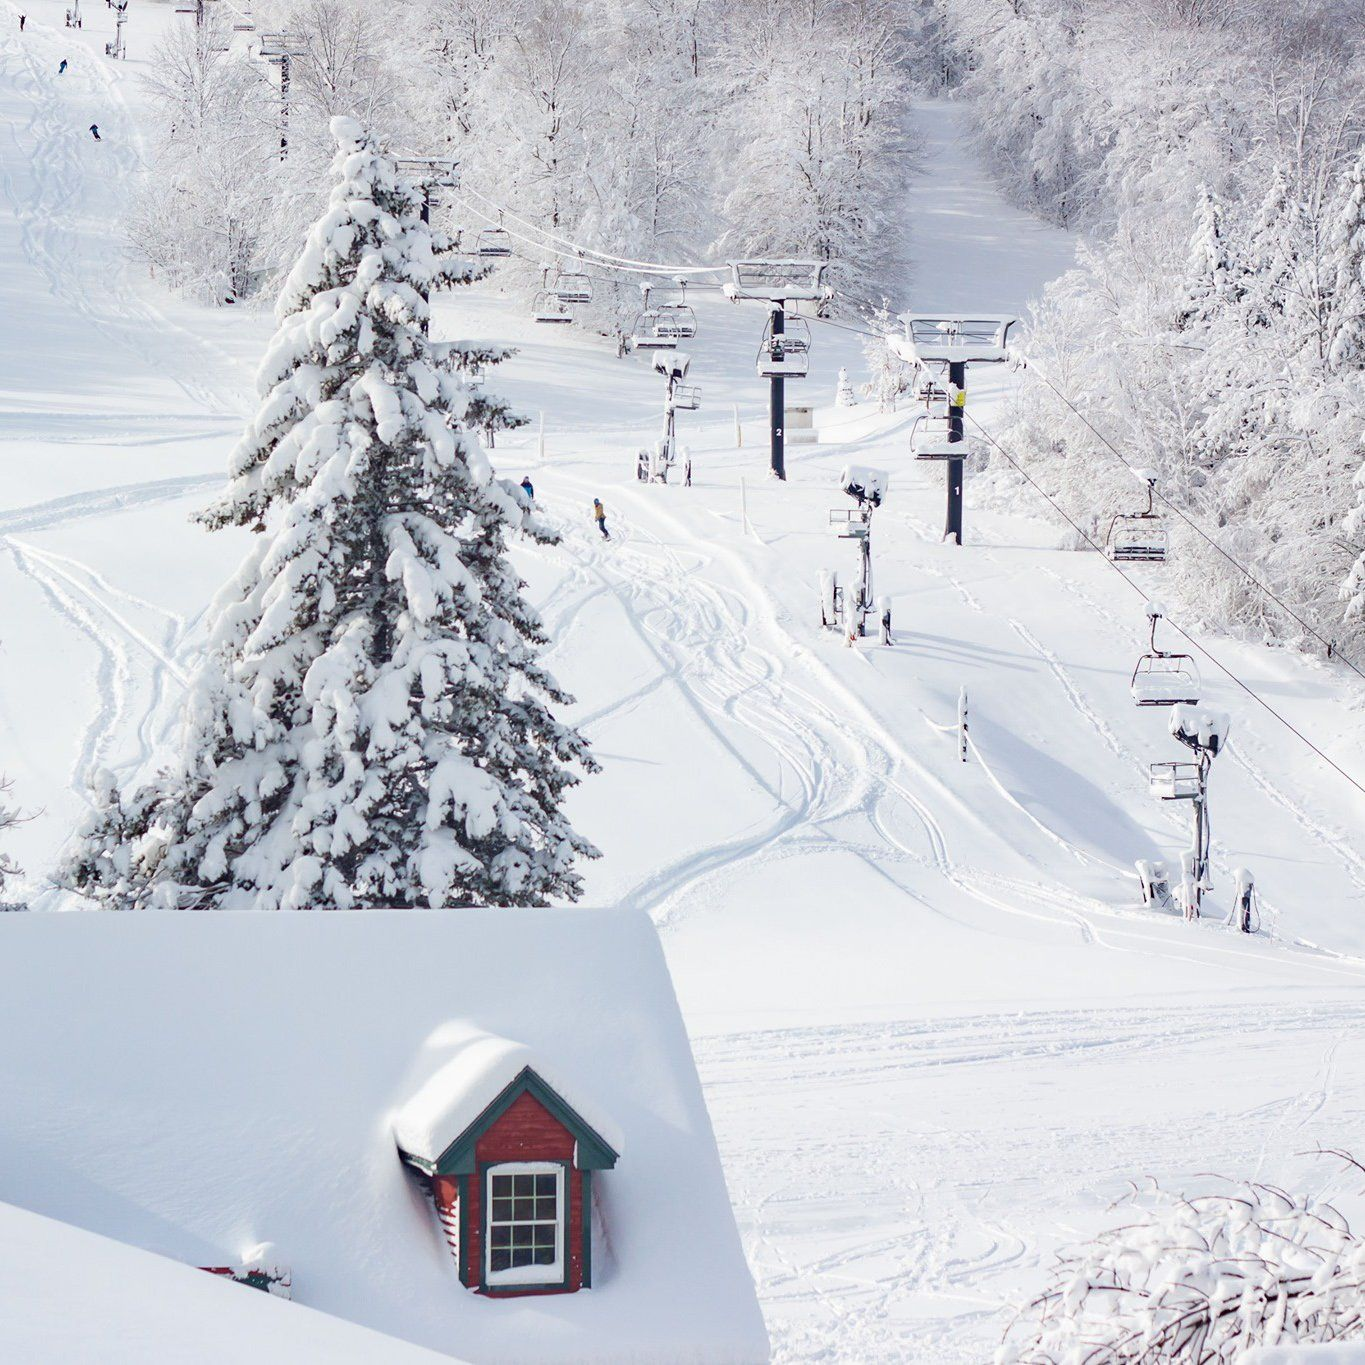 8 Best Vermont Ski Resorts For Every Level And Interest Vermont Ski Resorts Vermont Skiing Ski Resort